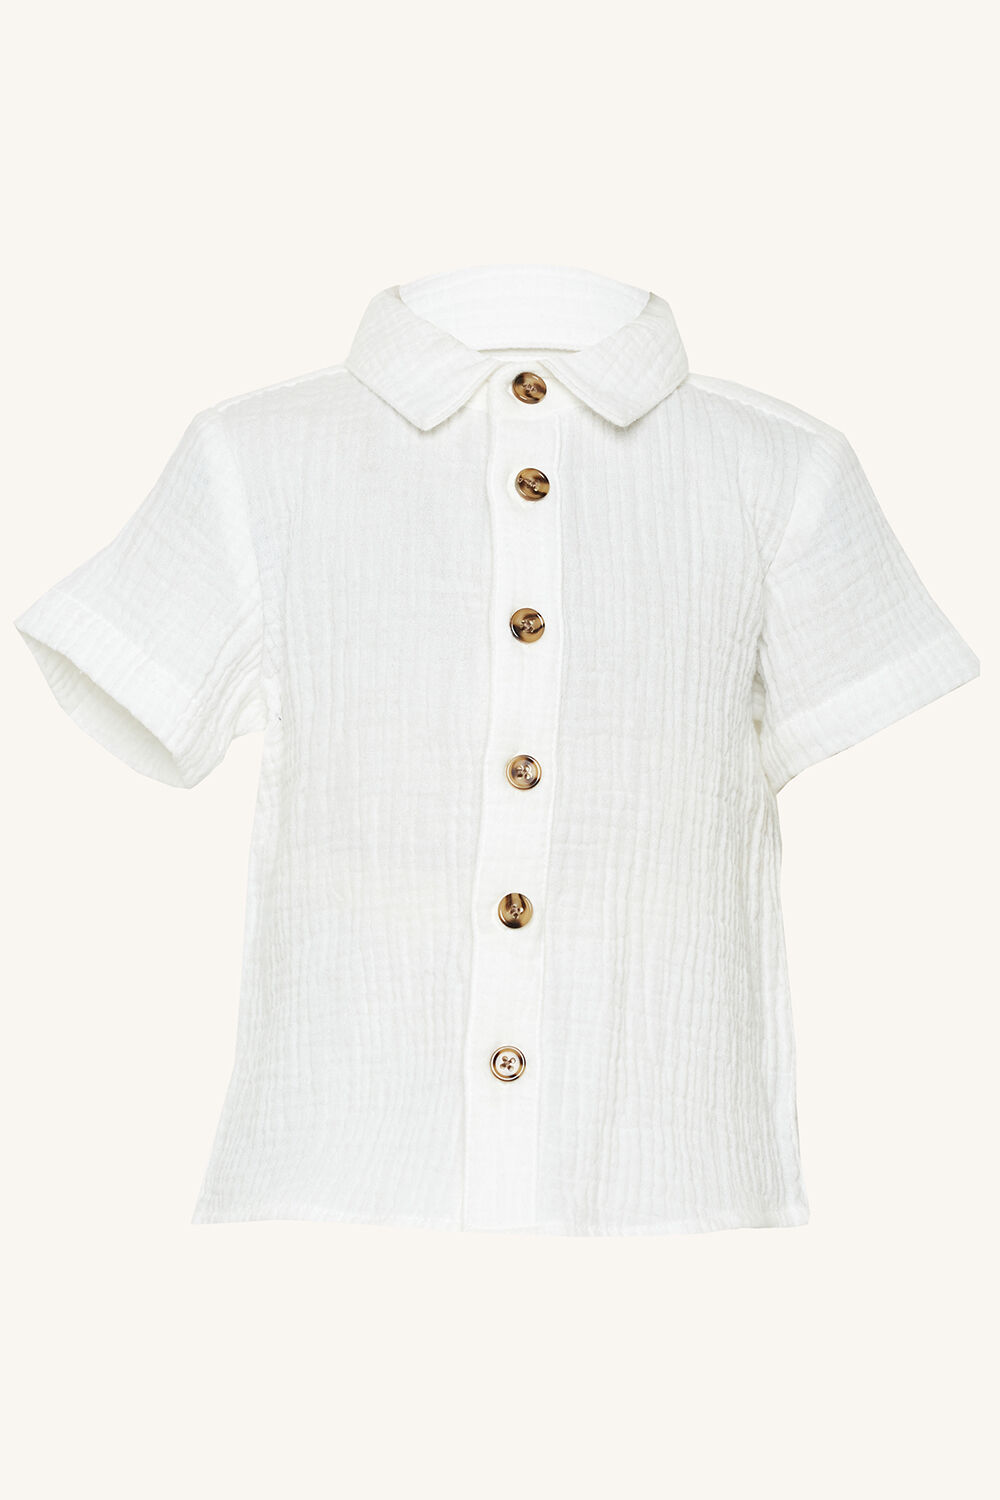 AIDAN TEXTURED SHIRT in colour EGRET